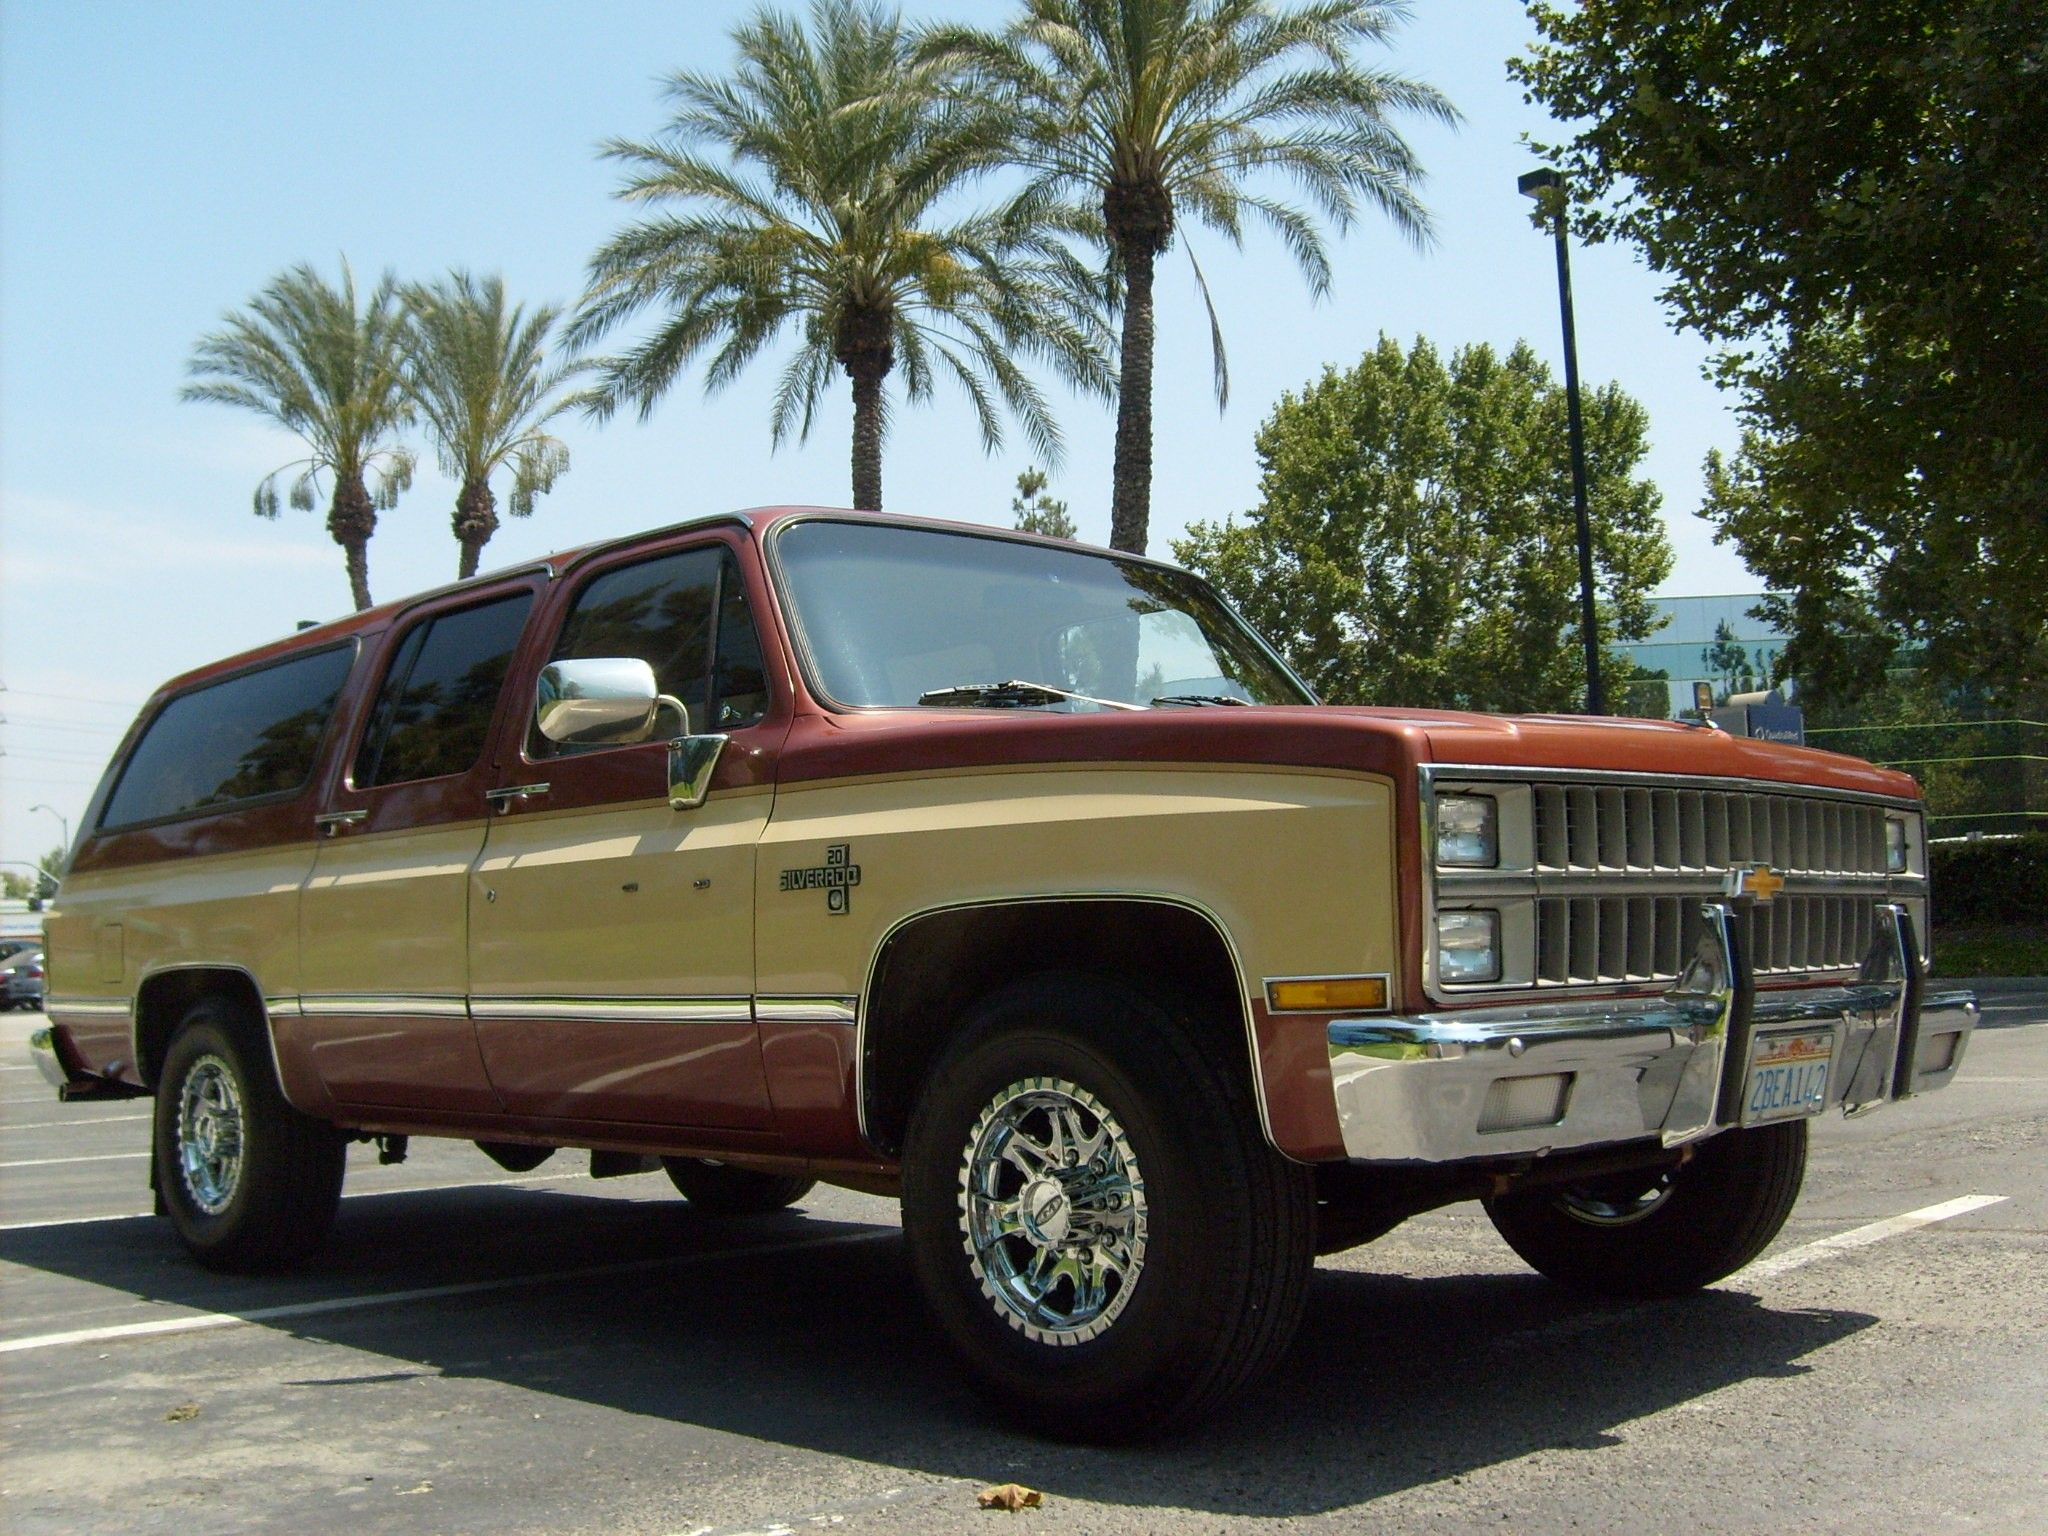 1982 Chevrolet Suburban Chevrolet Suburban Ford Excursion